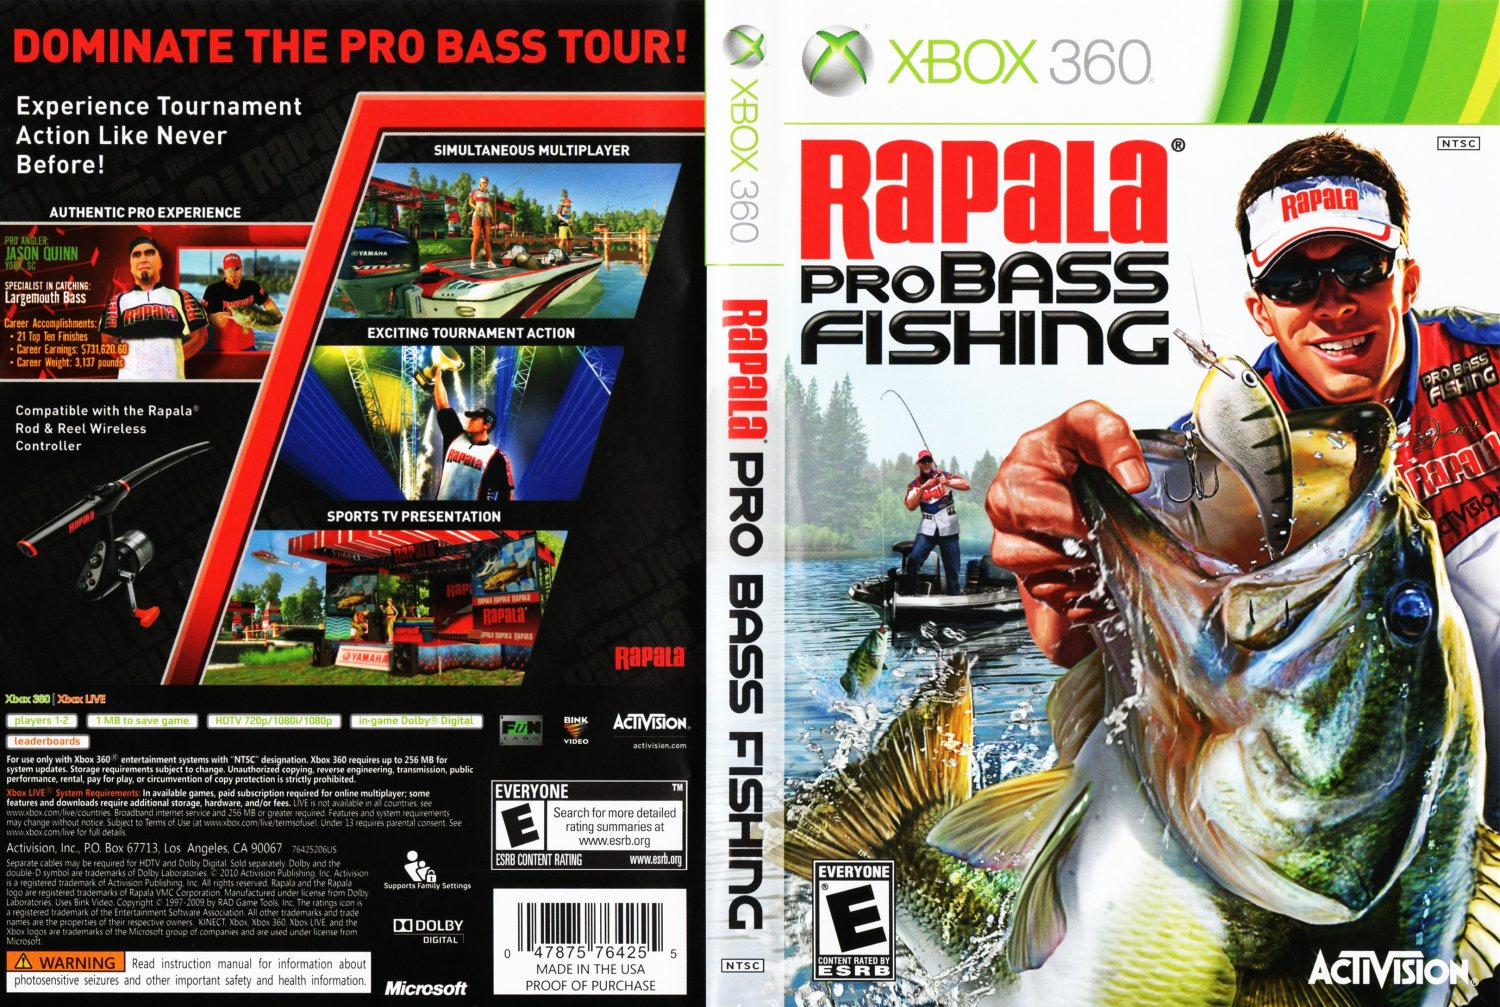 Rapala pro bass fishing dvd ntsc f xbox 360 game covers for Xbox 360 fishing games